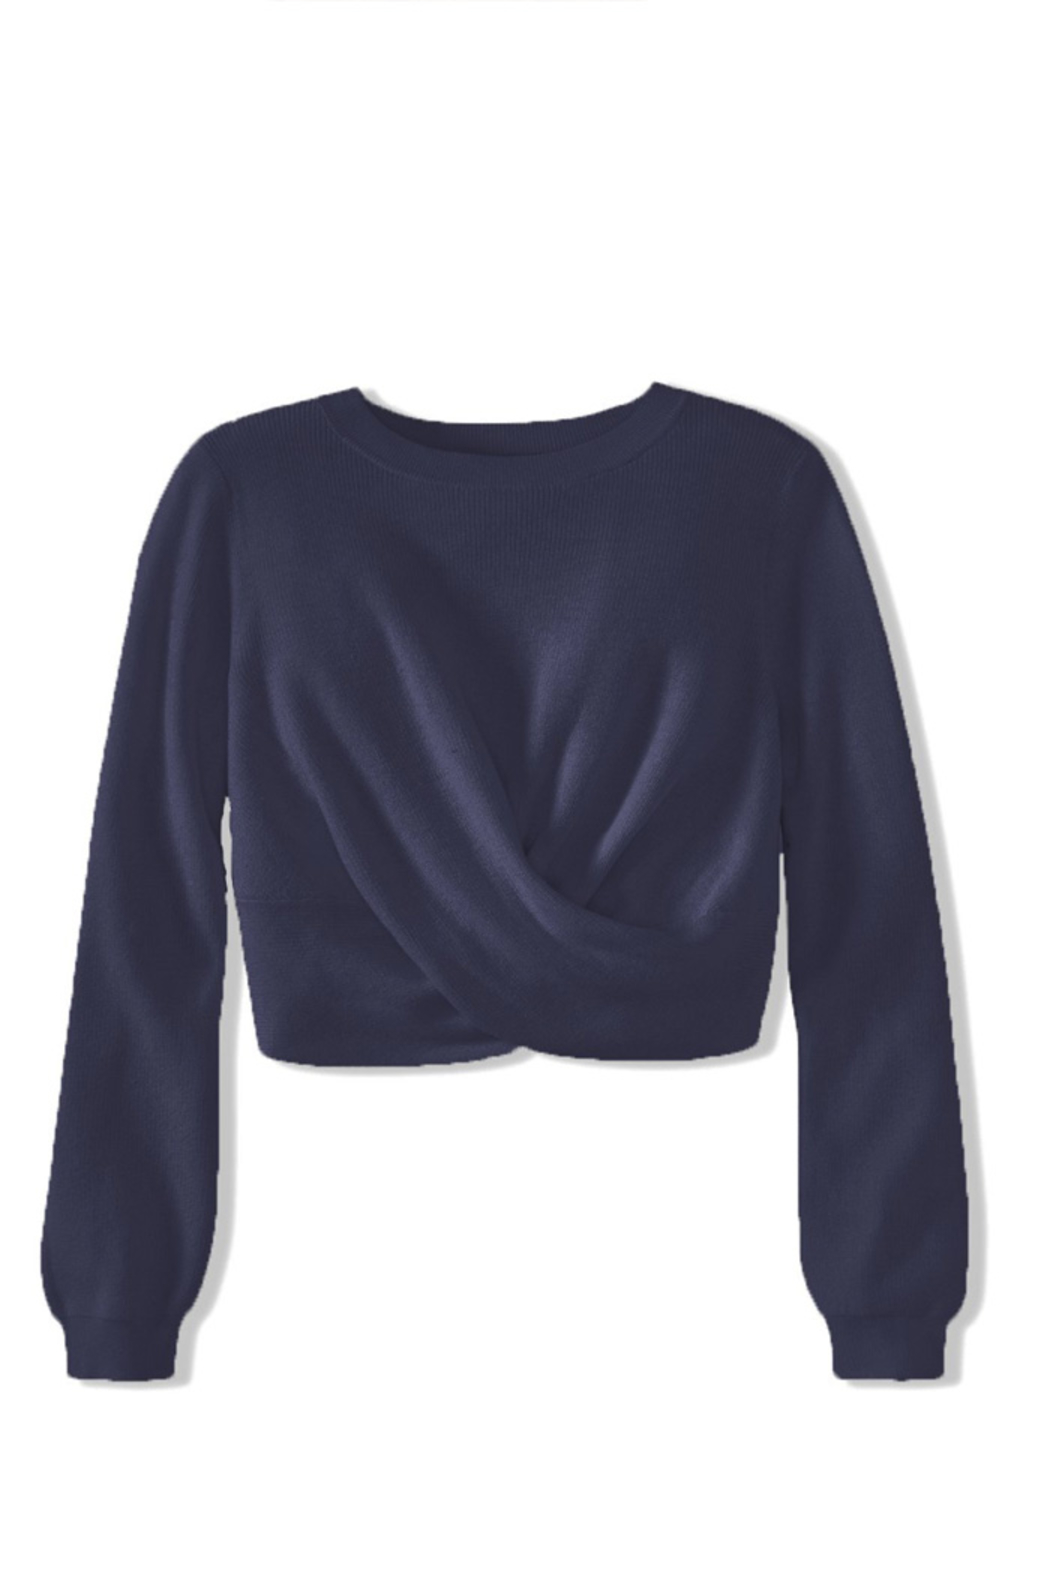 525 America TWIST TOP SWEATER PULLOVER - Front Cropped Image